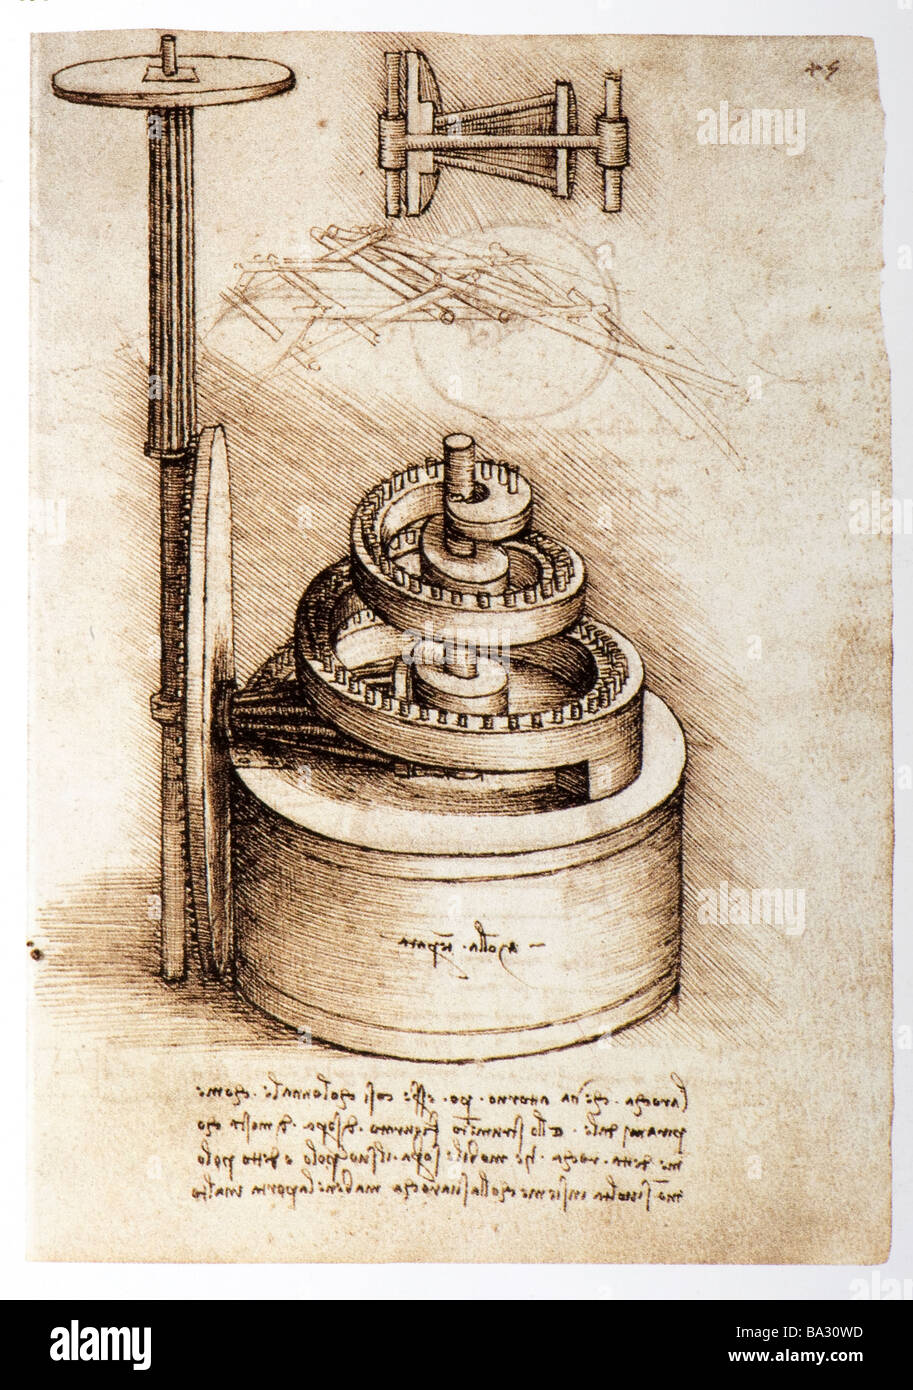 Tempered Spring with Volute Gear by Leonardo da Vinci 1493-1497 pen and ink - Stock Image